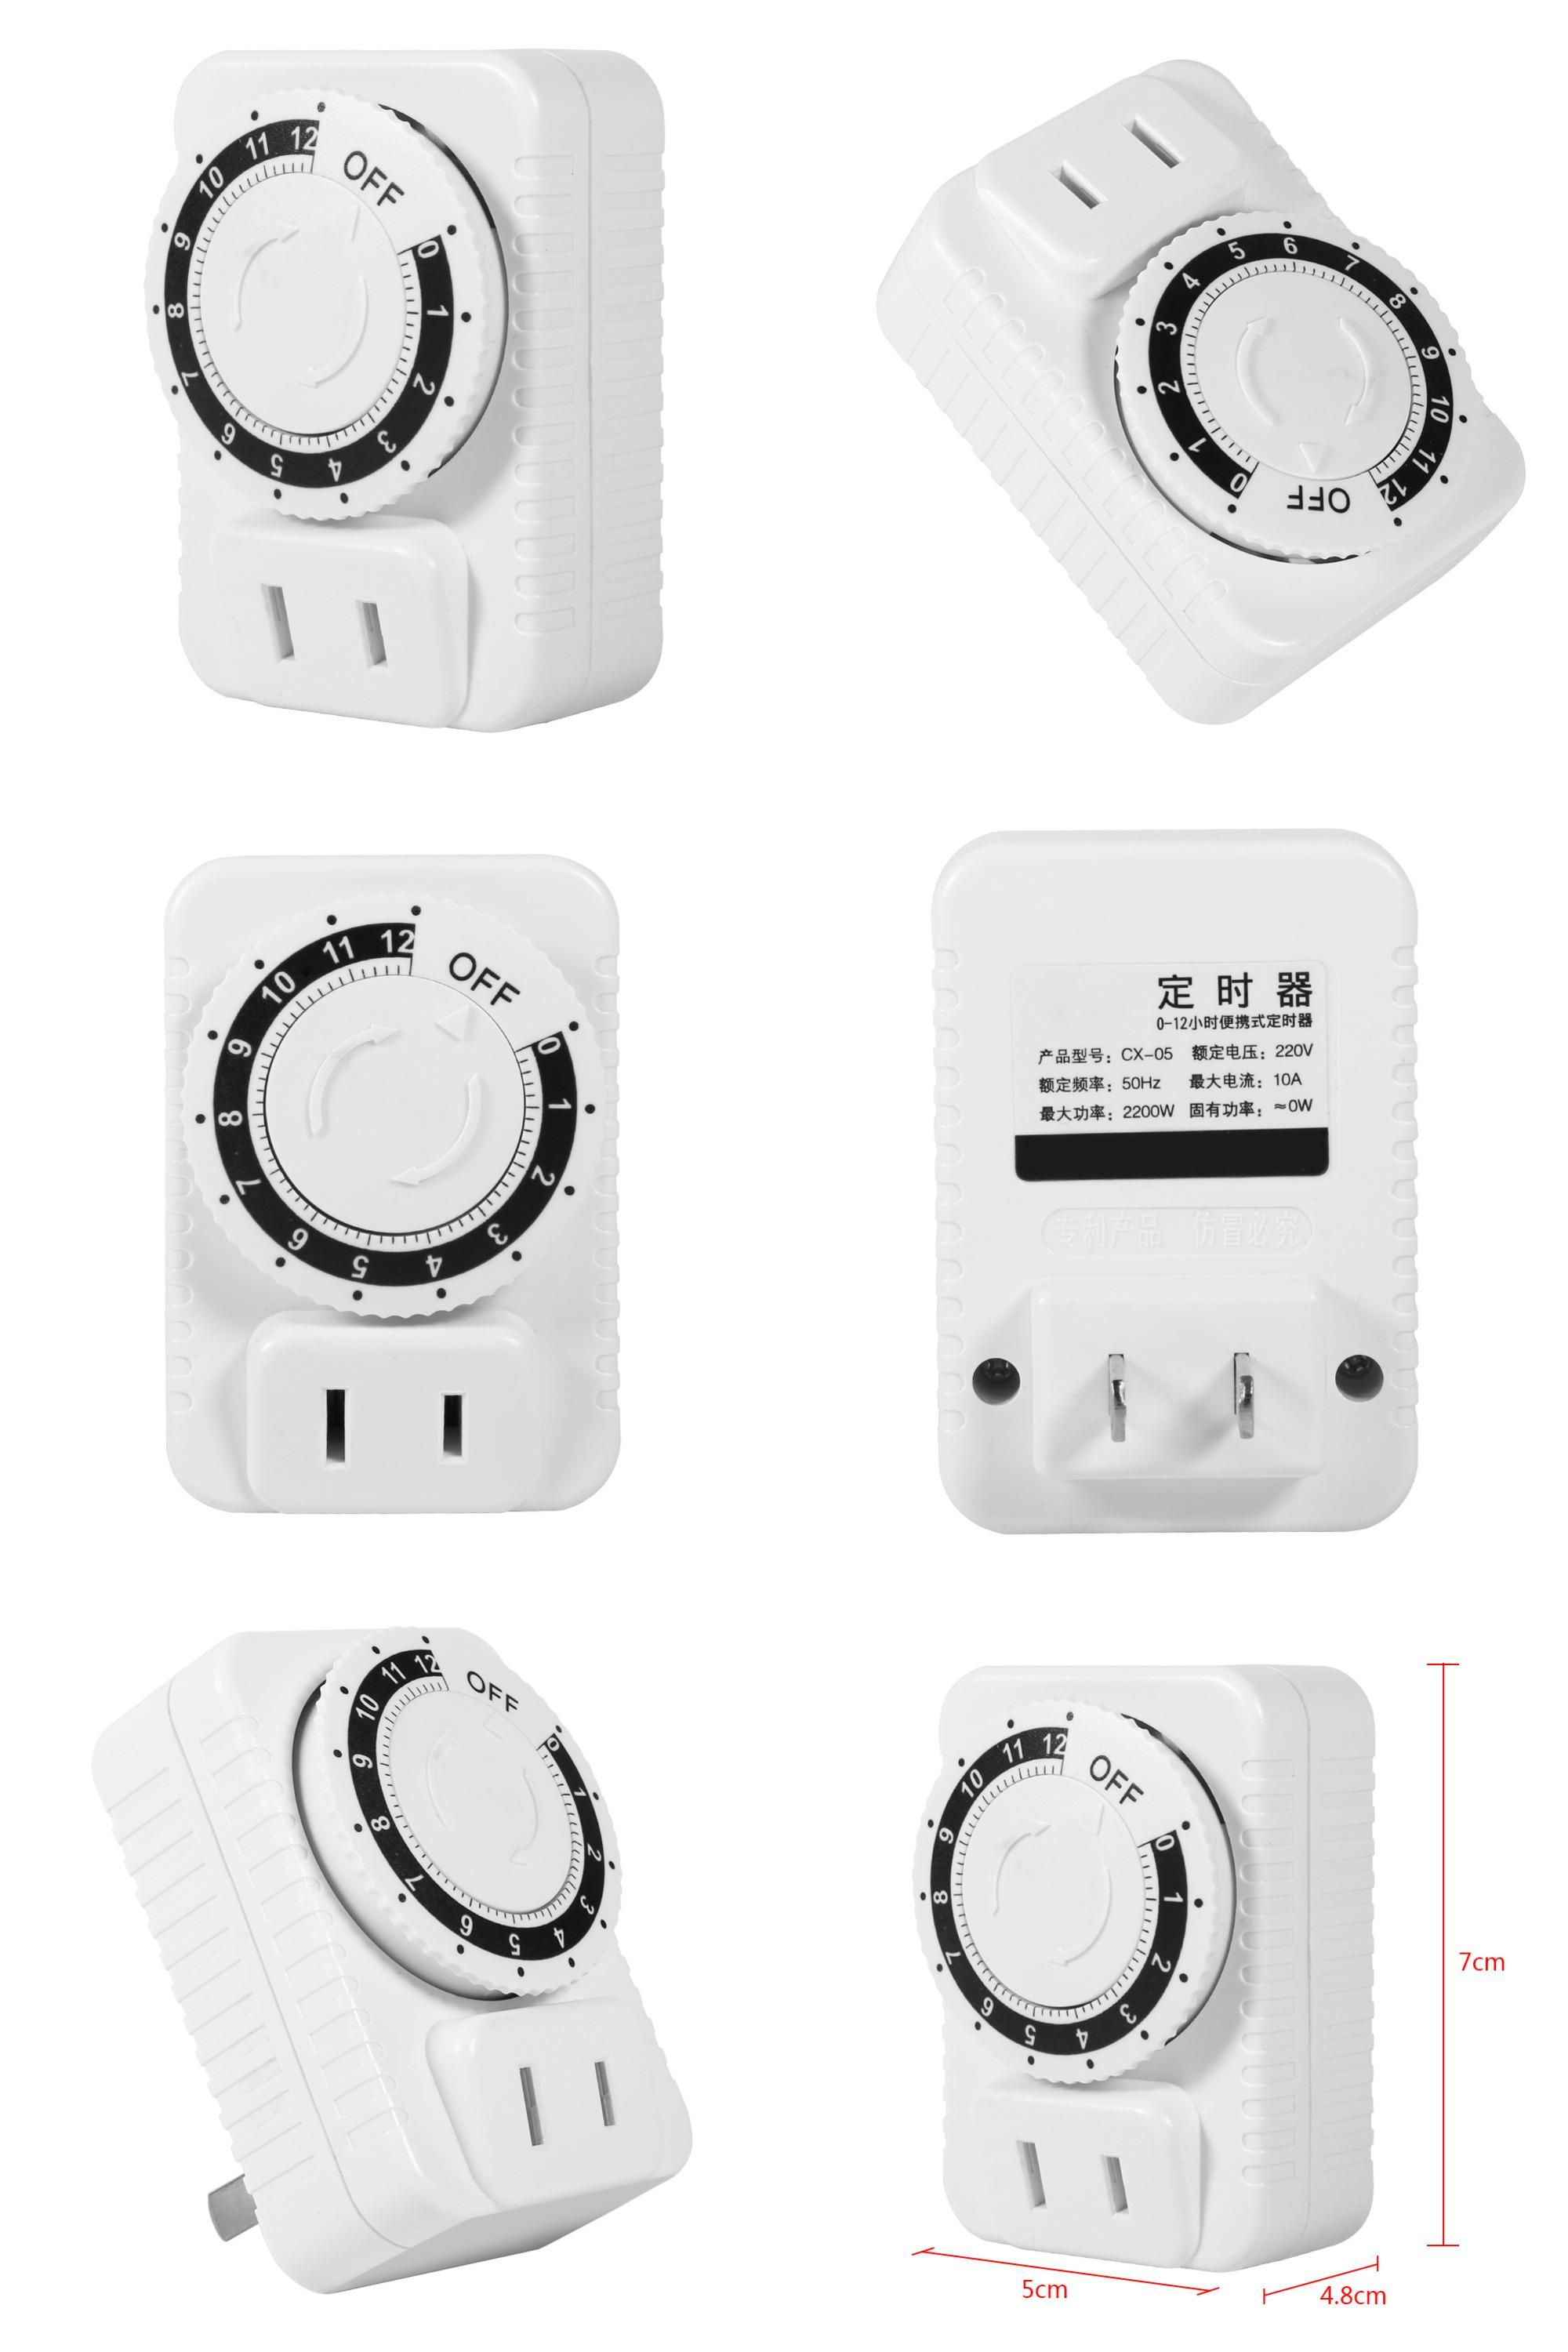 Visit to Buy] 1Pc 12 Hour Electrical Mechanical Time Wall Plug ...